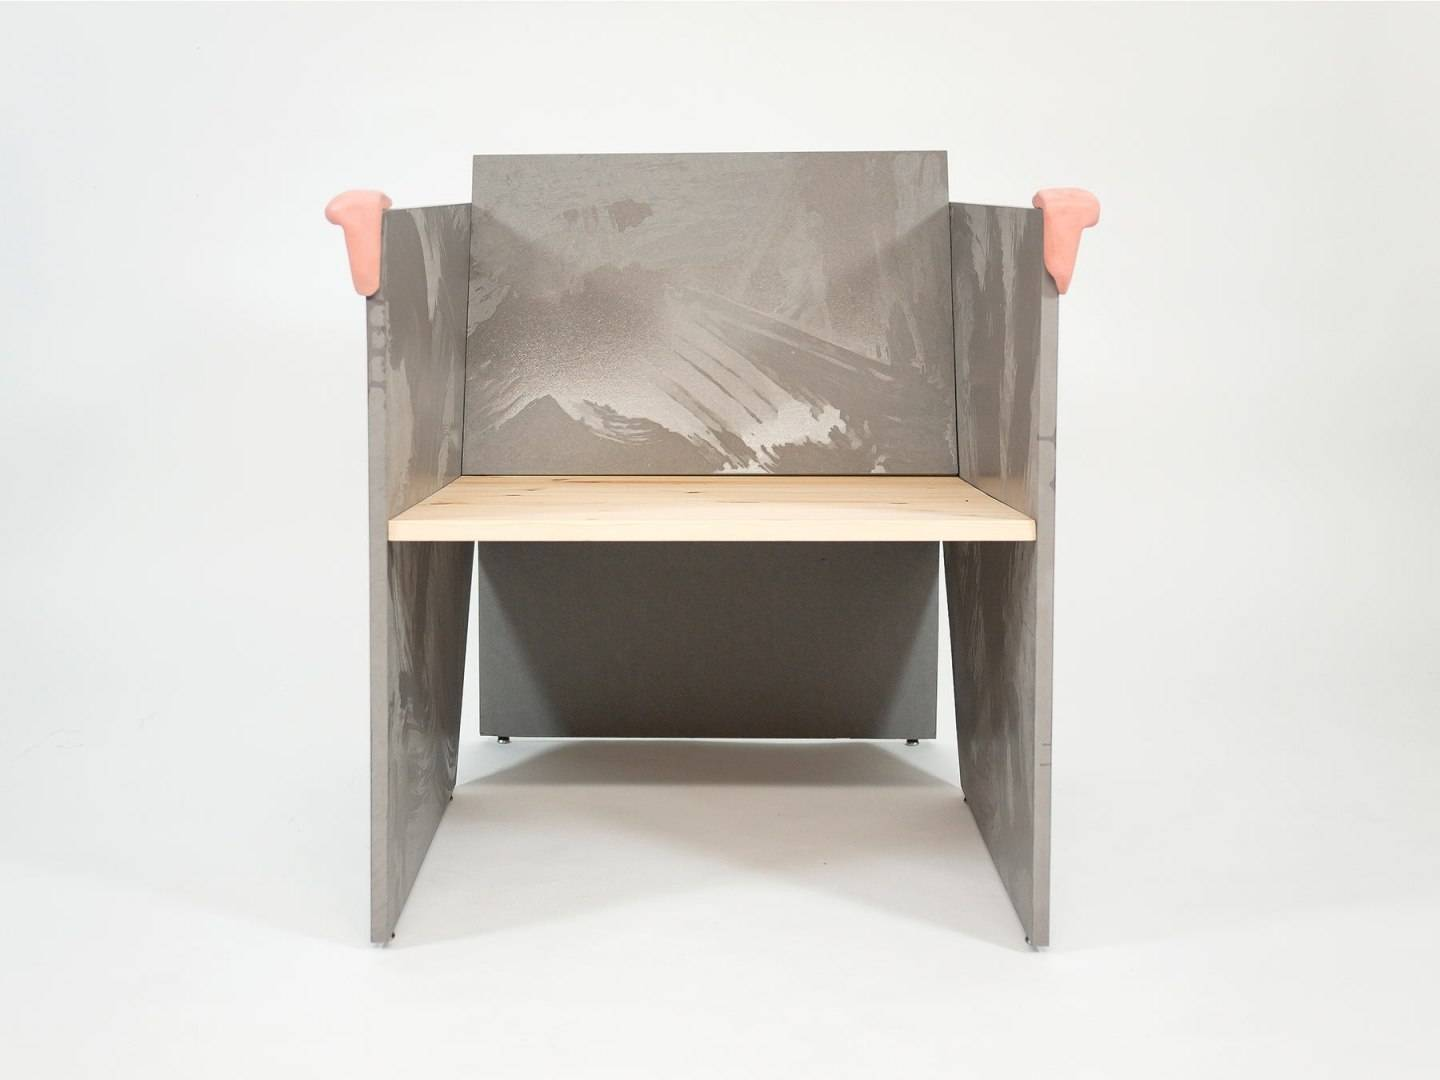 rapid-handmade-furniture-by-jenny-nordberg-9